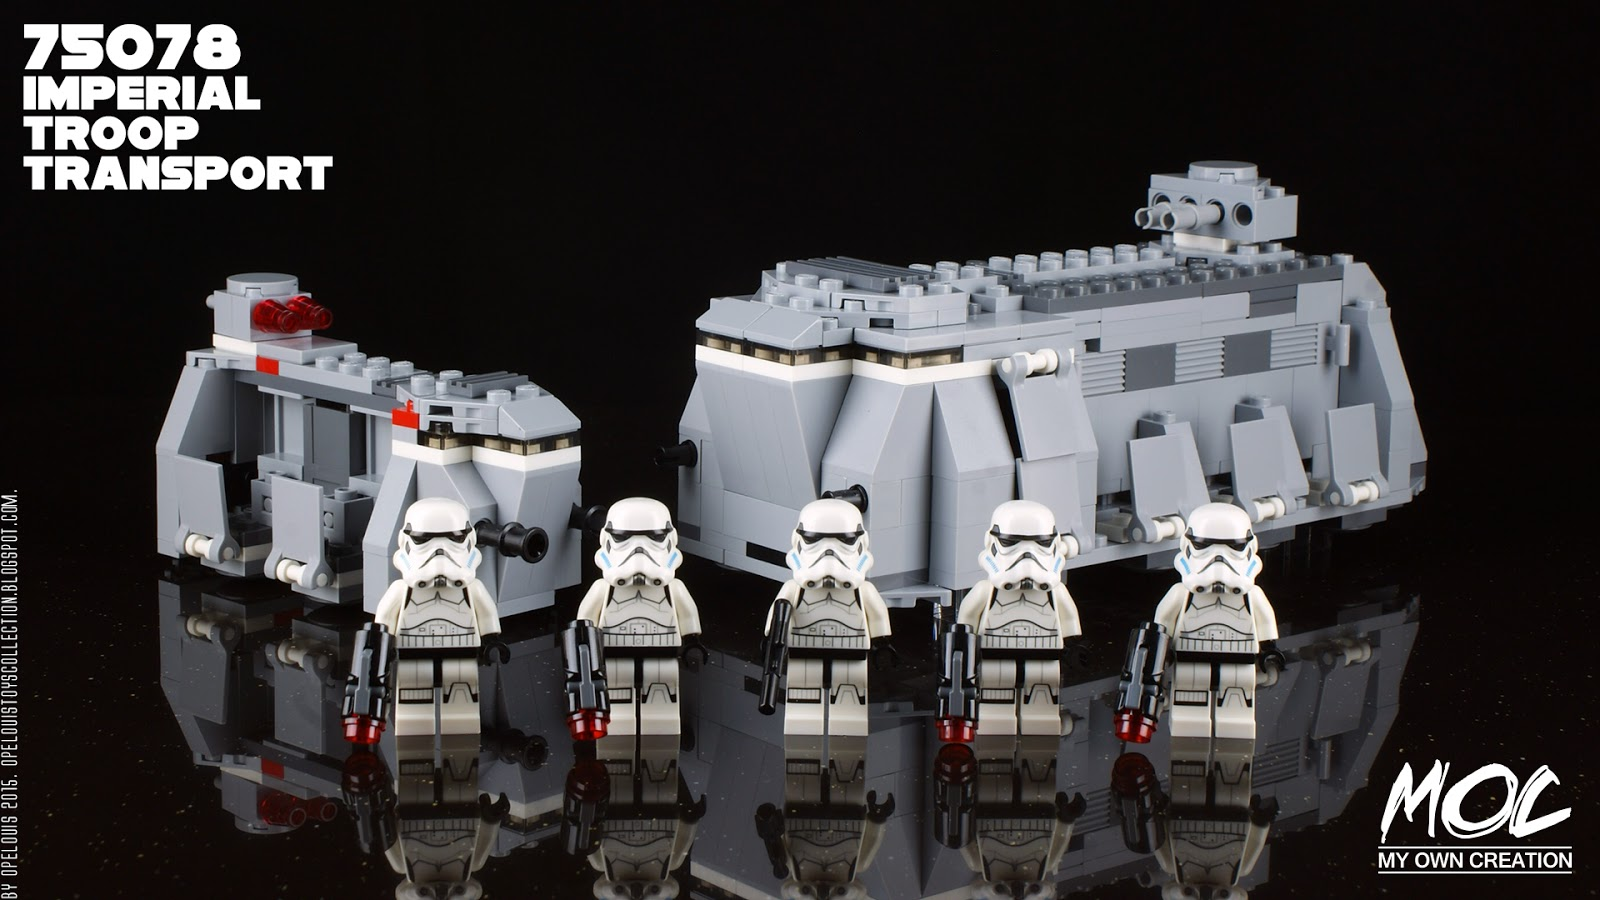 Opelouiss Toys Collection LEGO MOC Star Wars Imperial